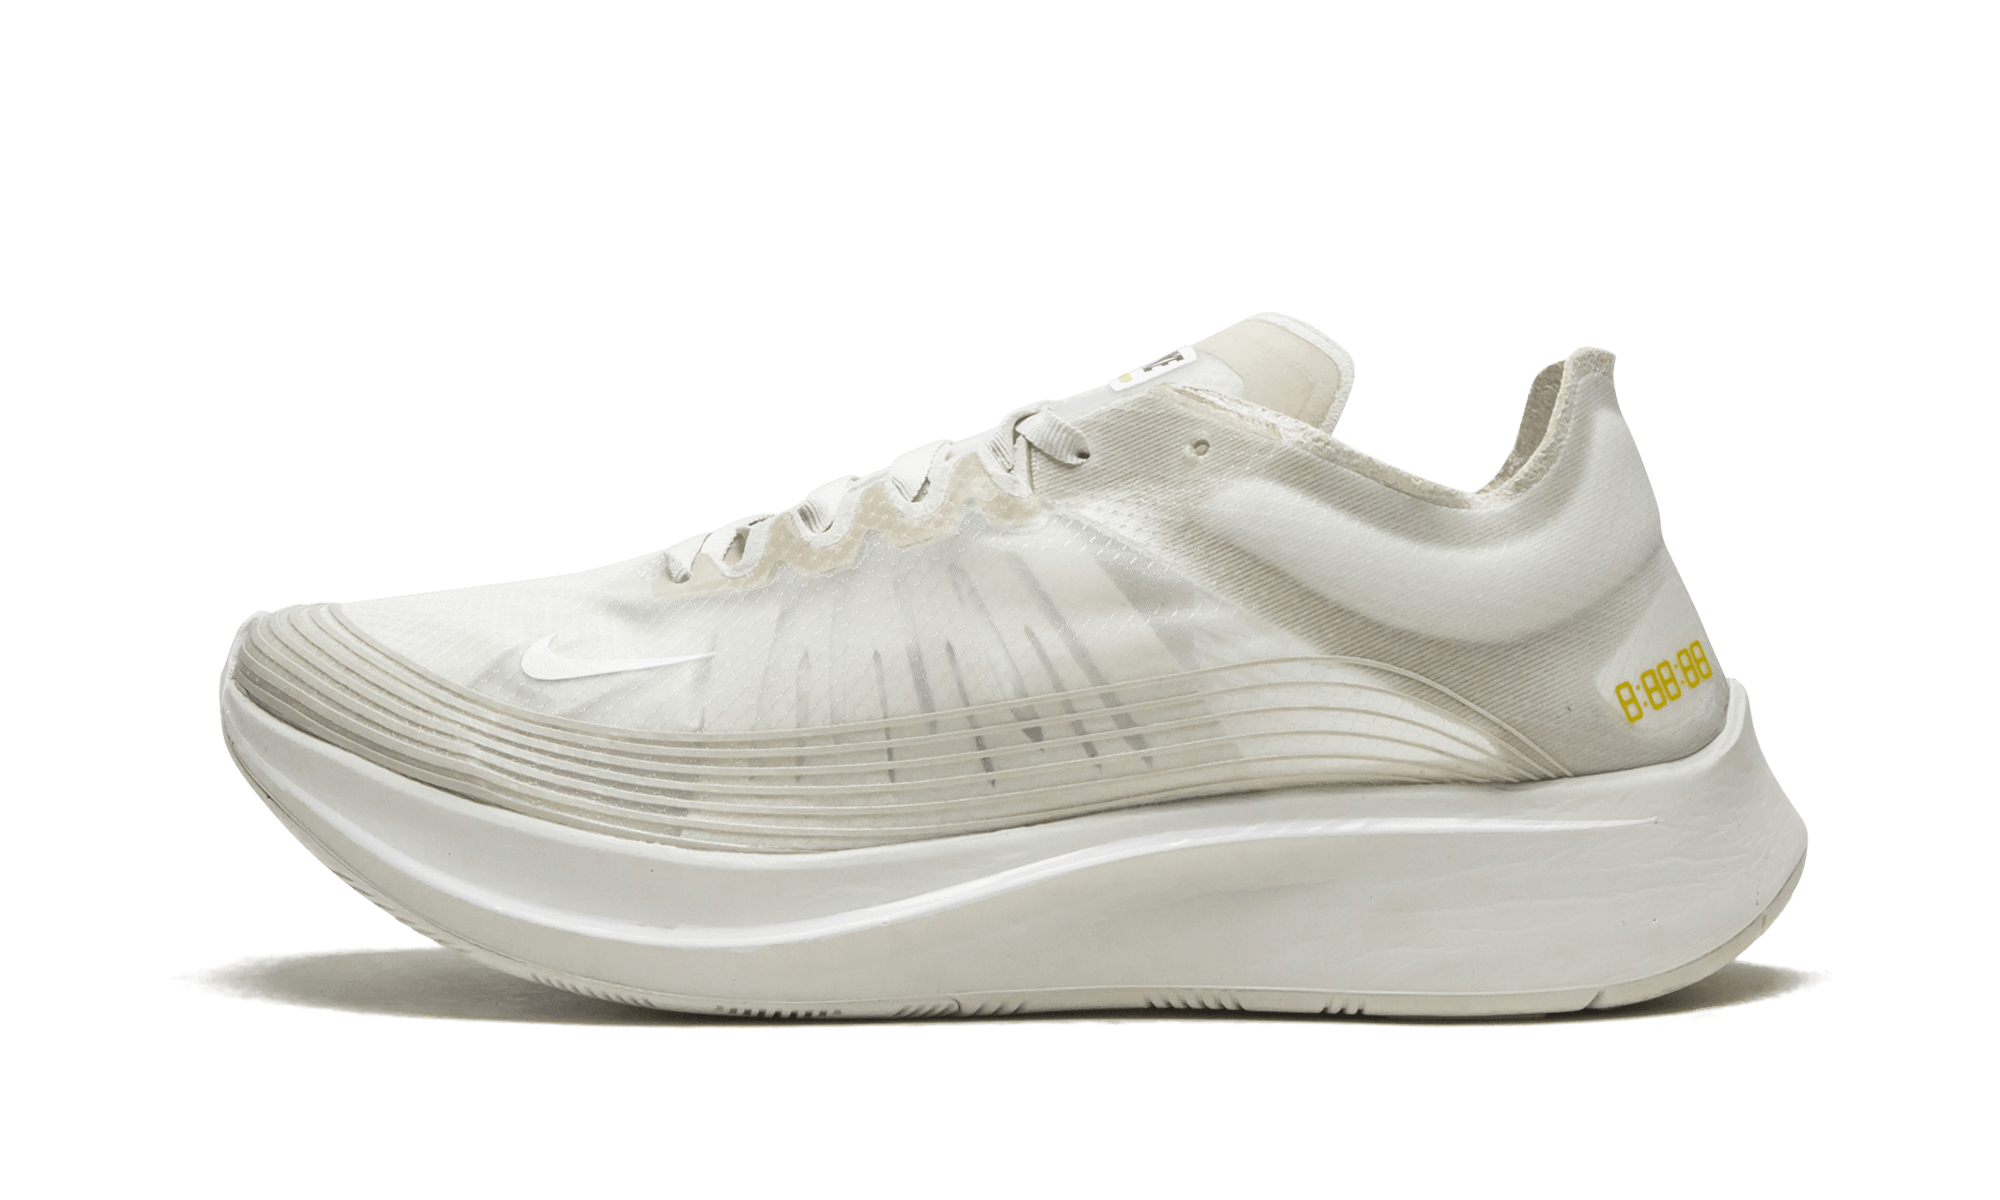 New Mens Nike Zoom Fly SP Training Shoes In White Online Sale